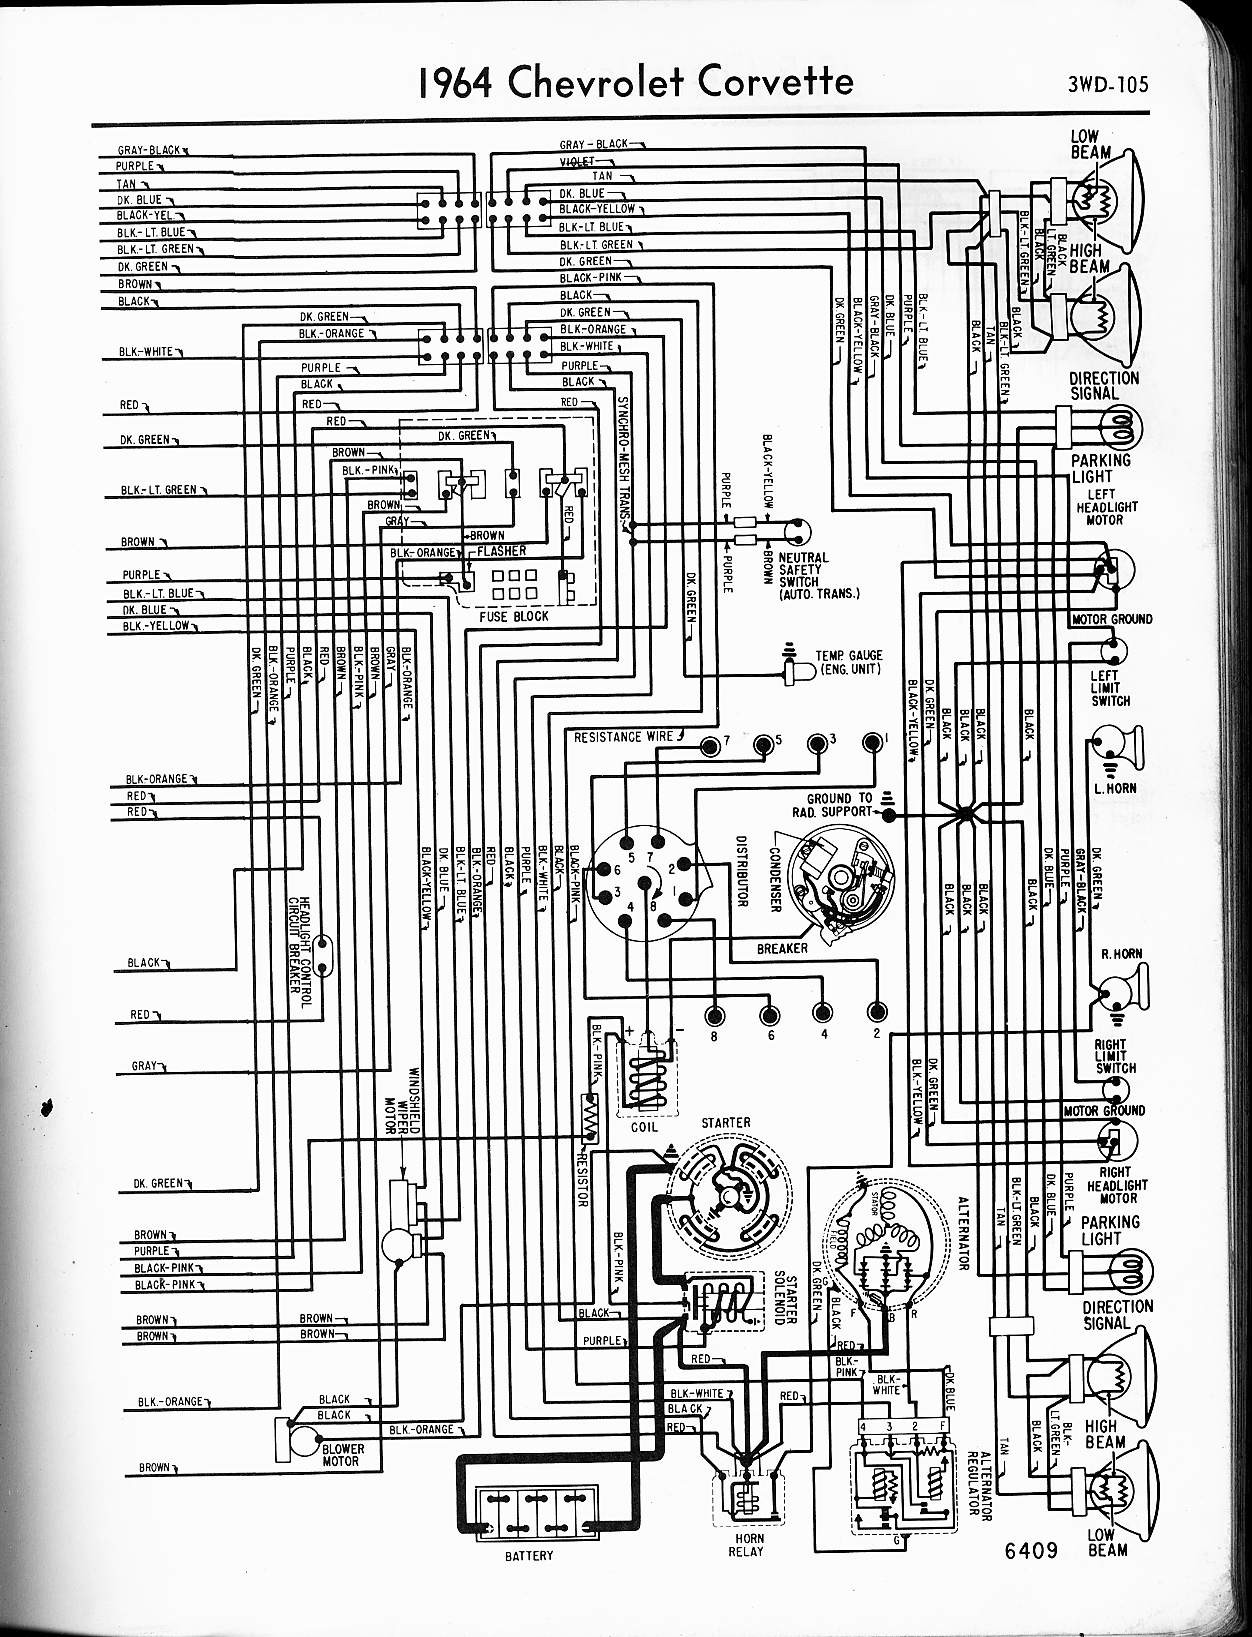 1970 Chevy Truck Fuse Box - Wiring Diagram Schematics on